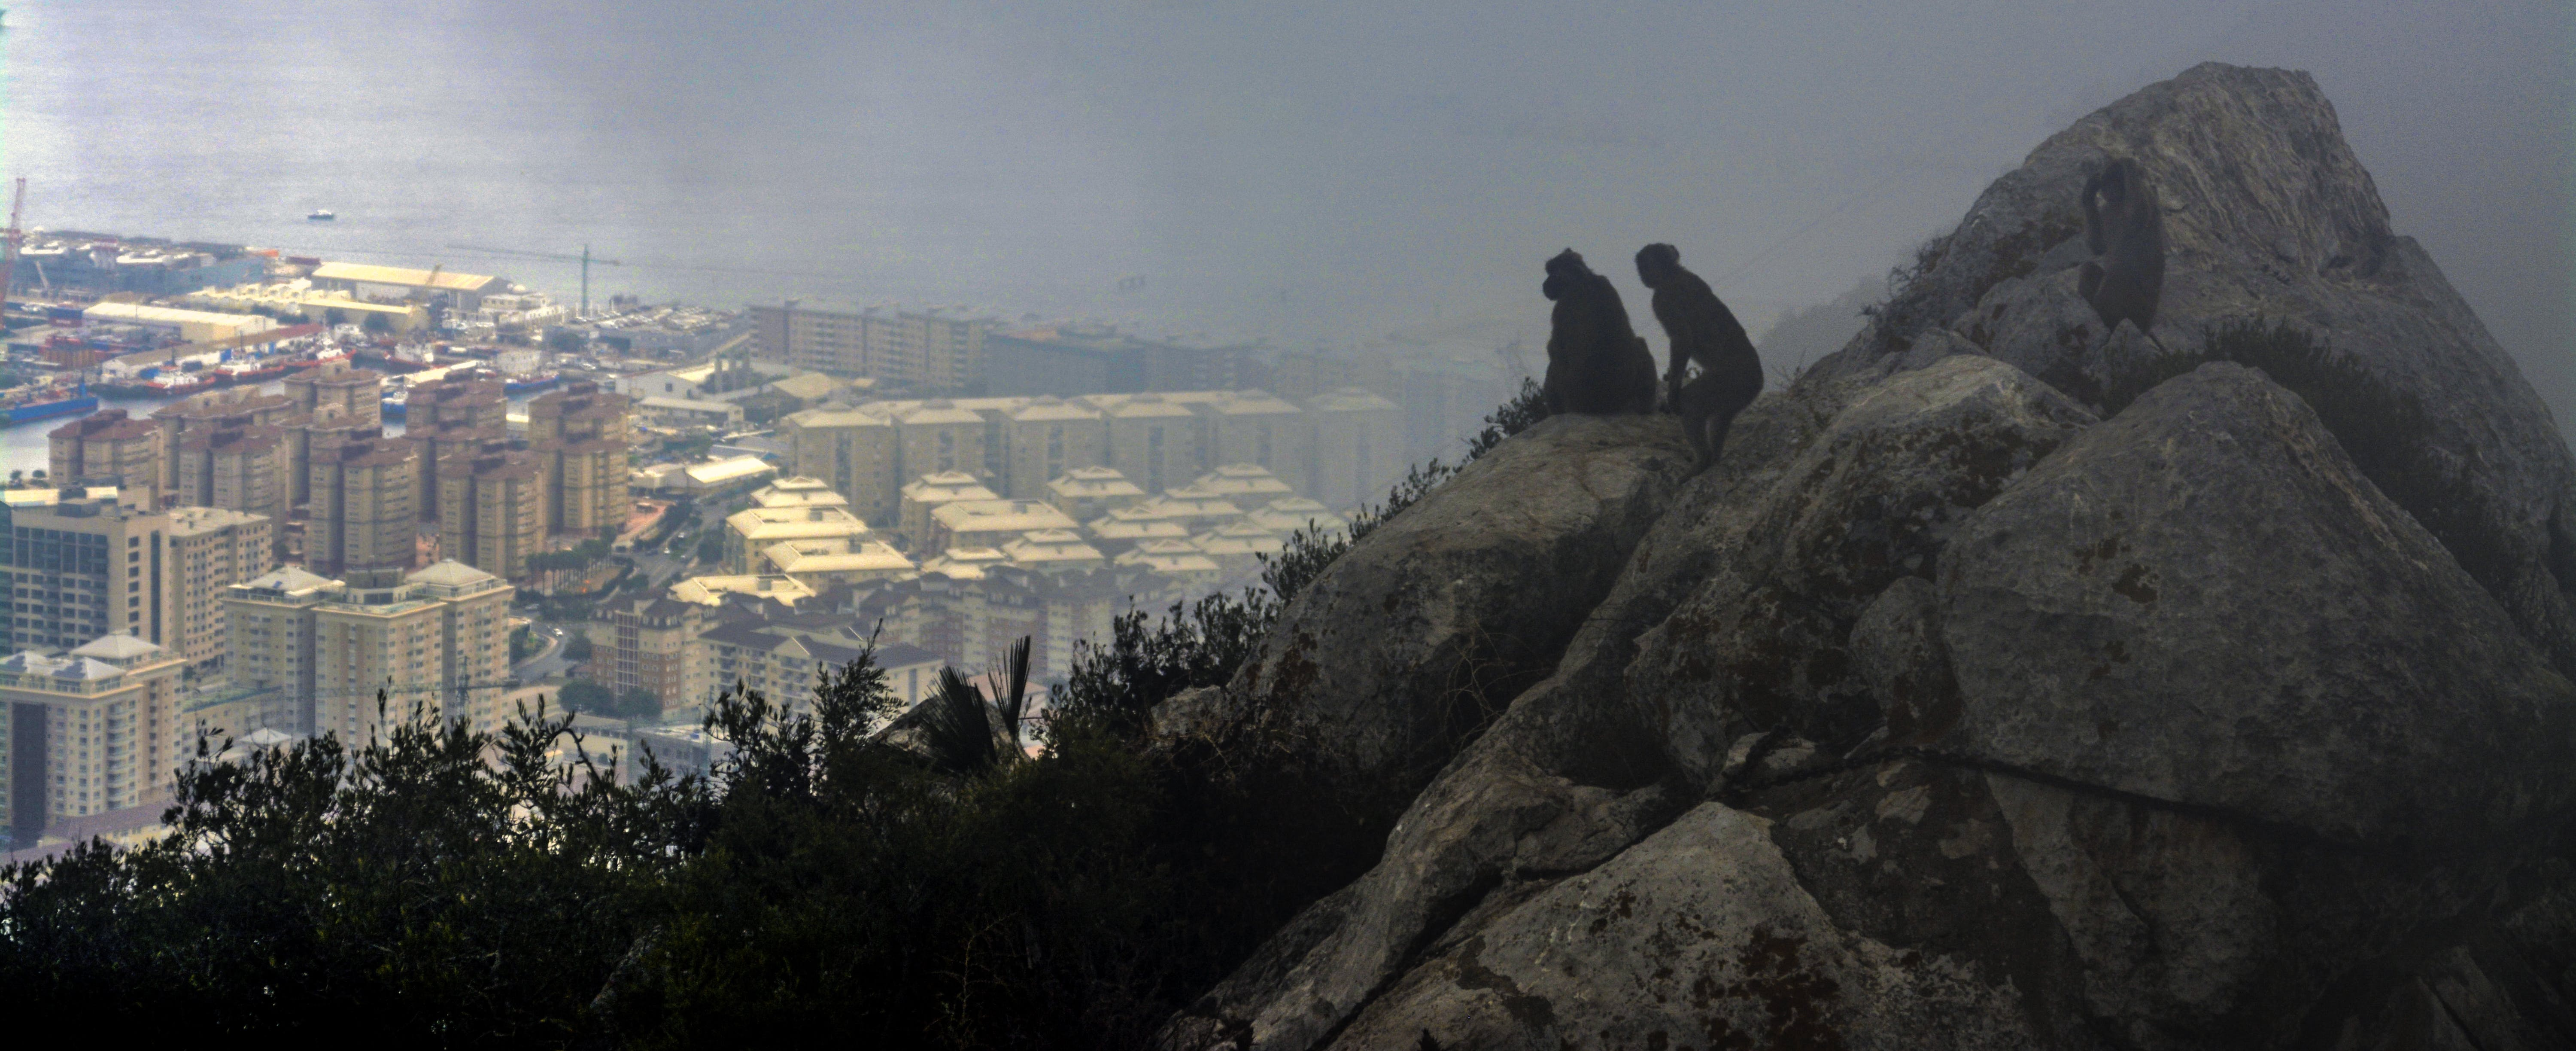 Free stock photo of city, cliff, foggy, Gibraltar